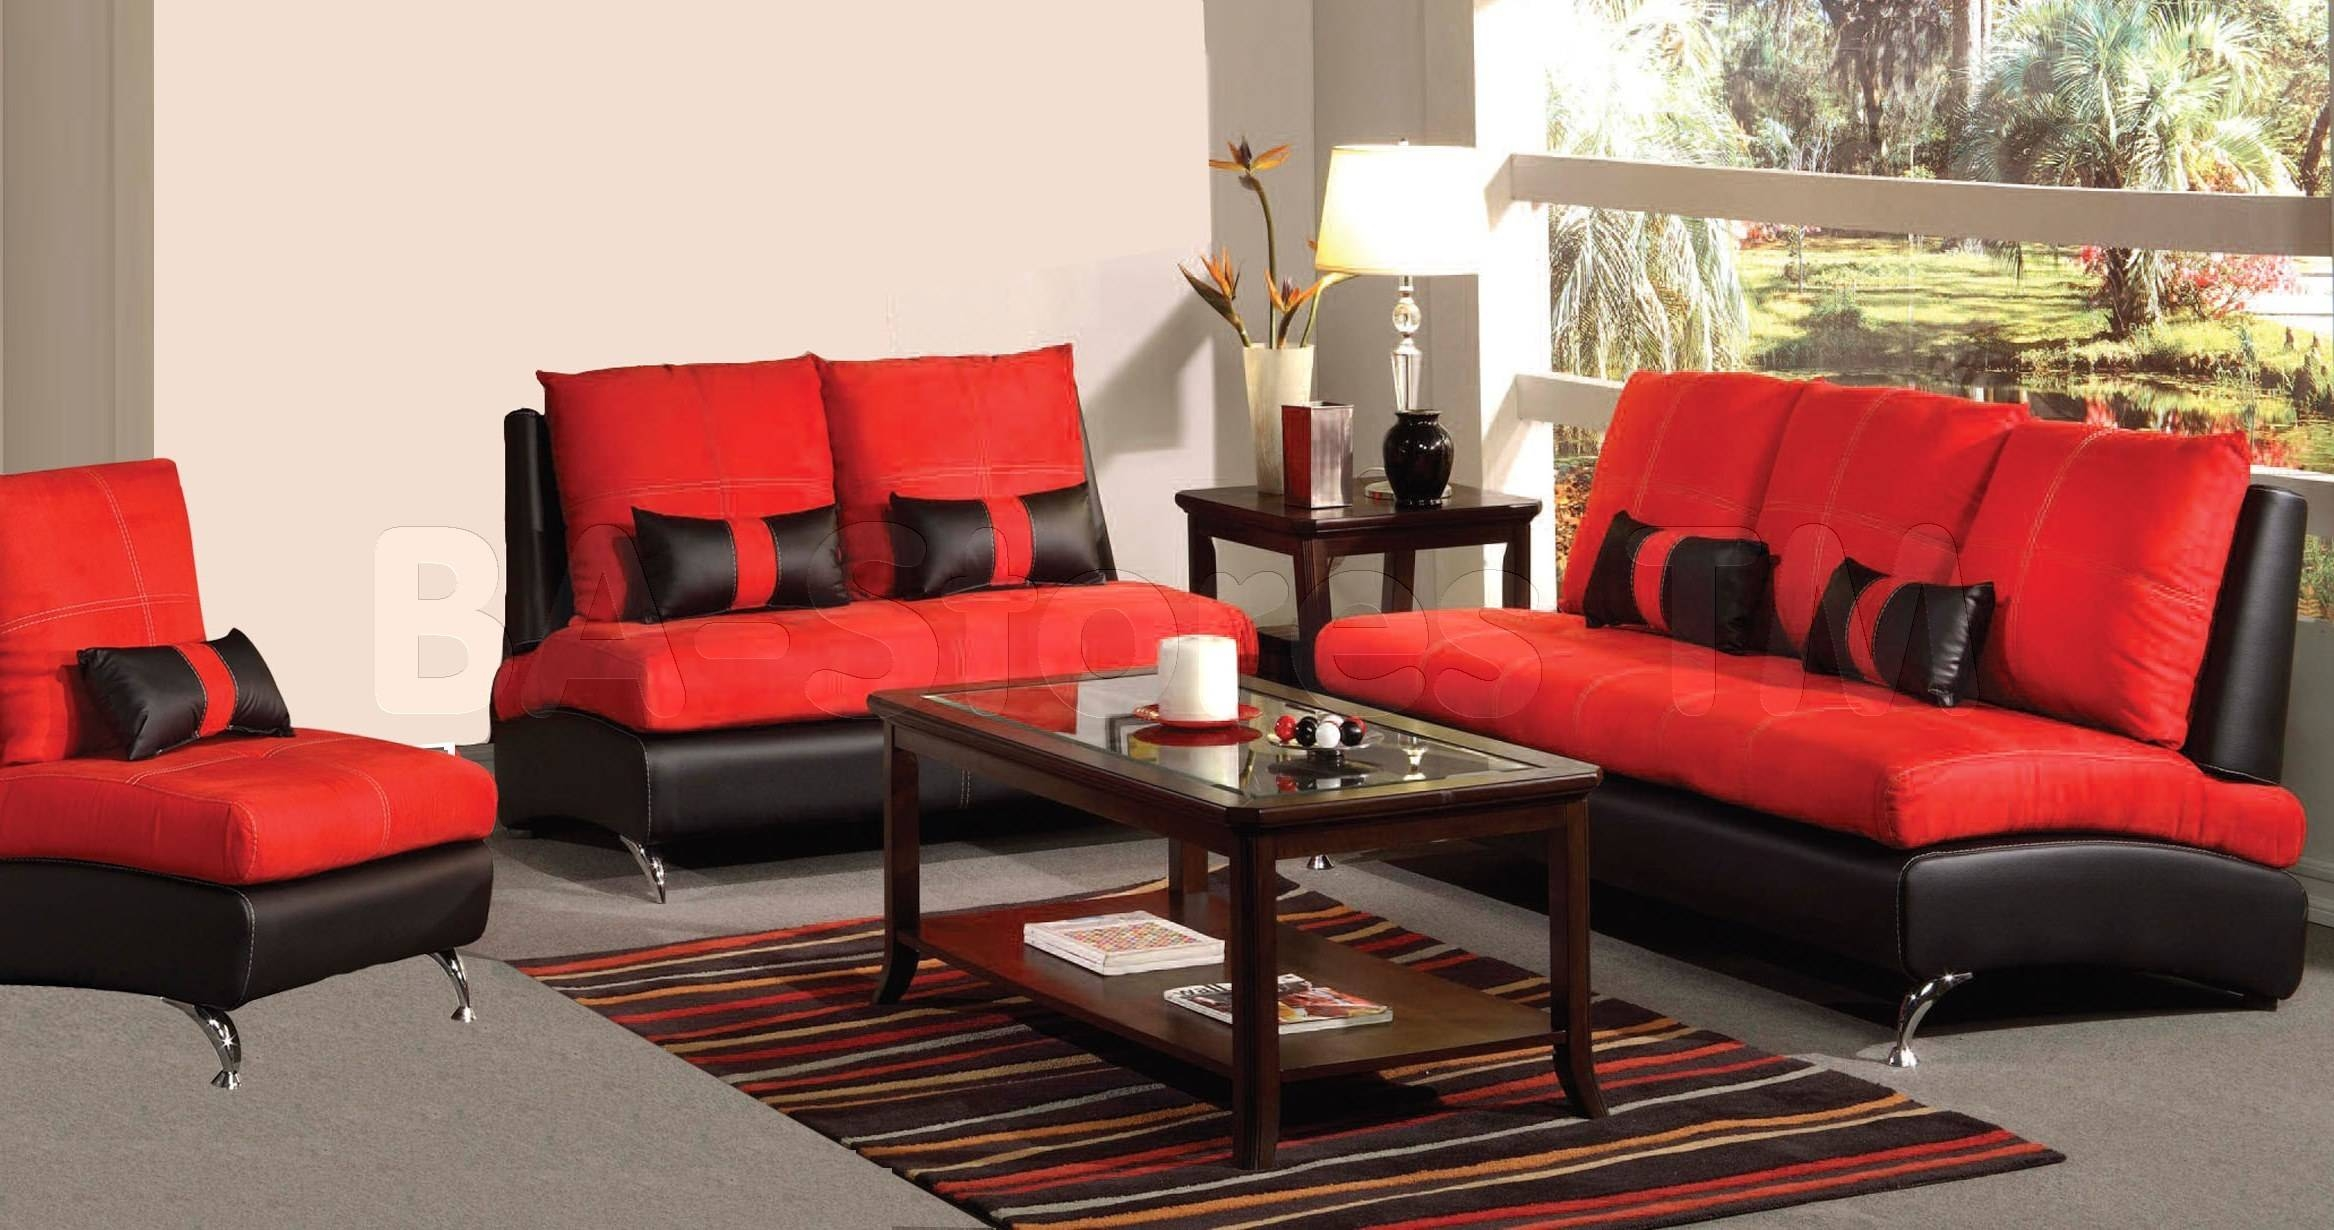 15 Collection of Black and Red Sofas